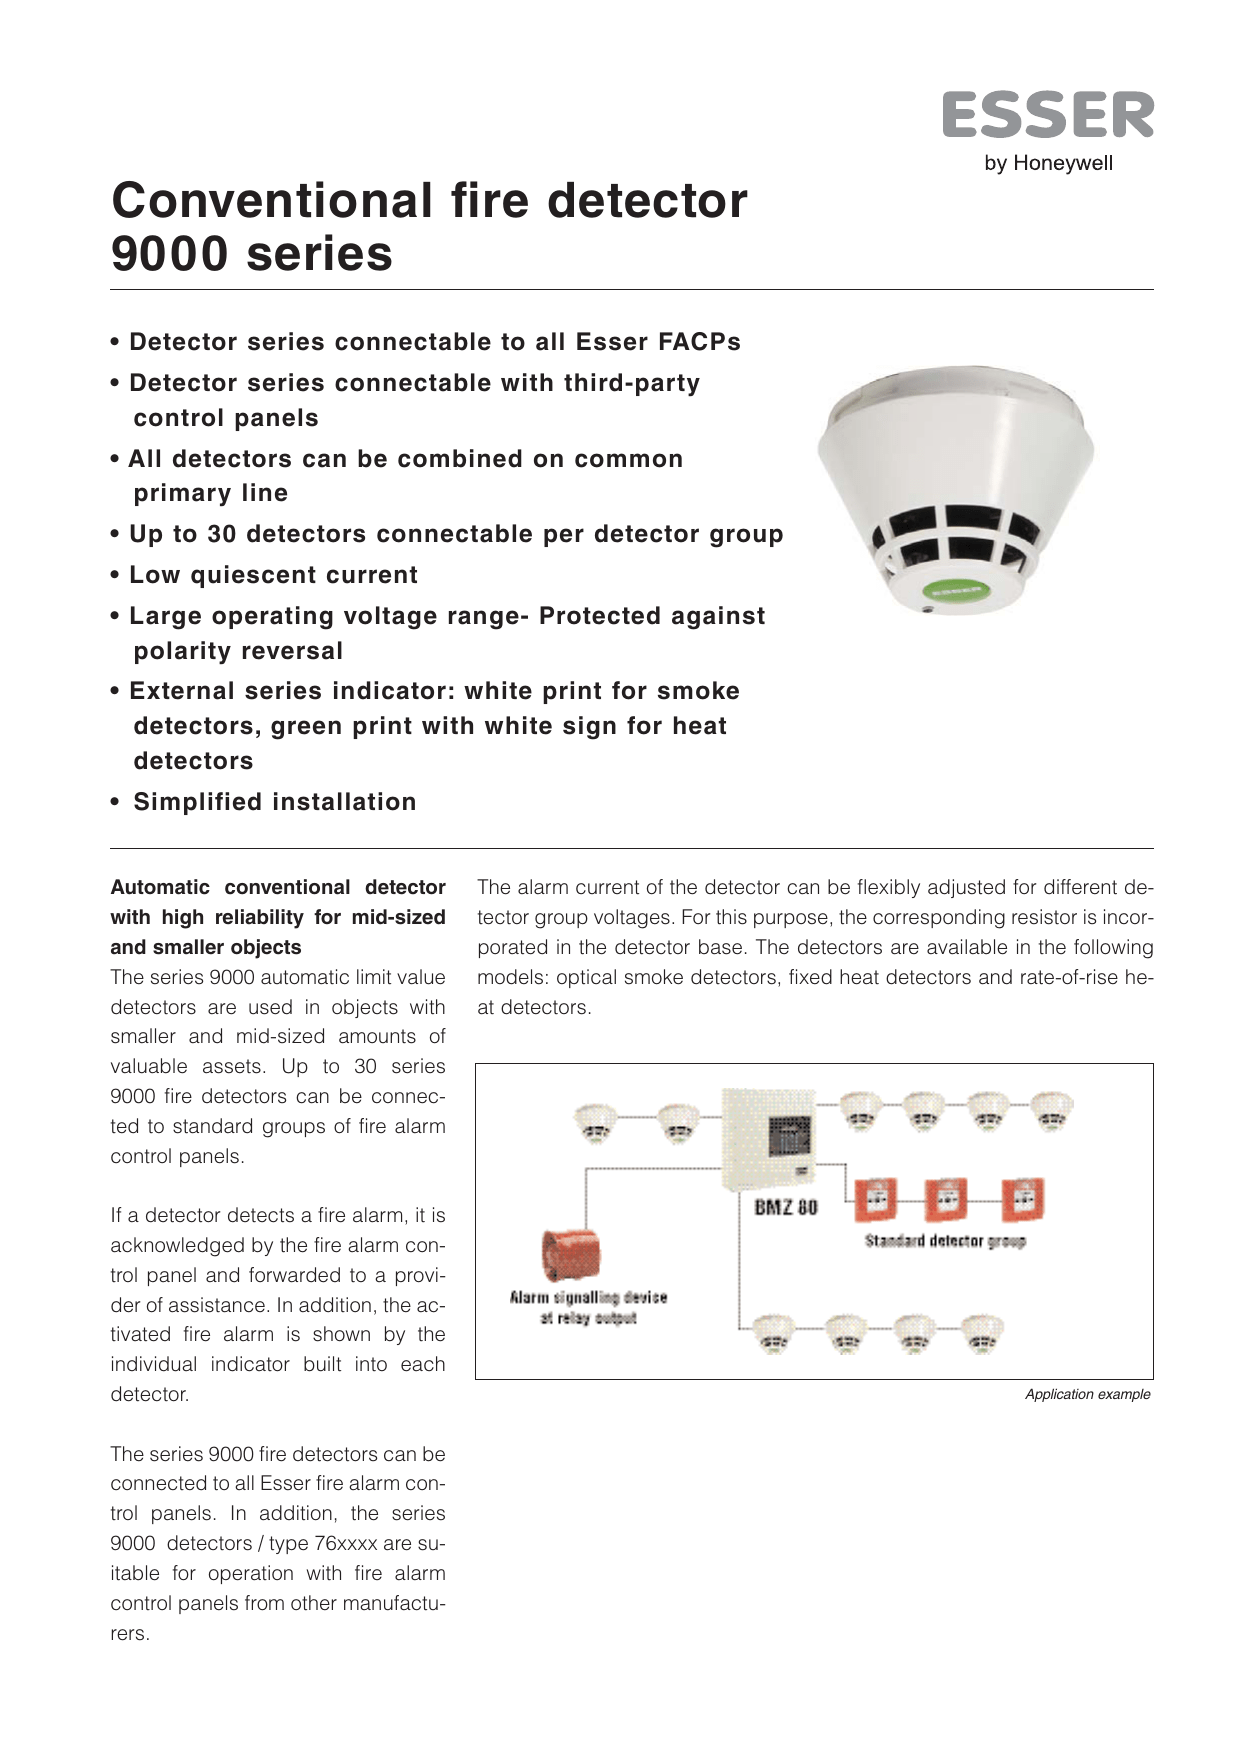 hight resolution of conventional fire detector 9000 series manualzz com esser smoke detector wiring diagram